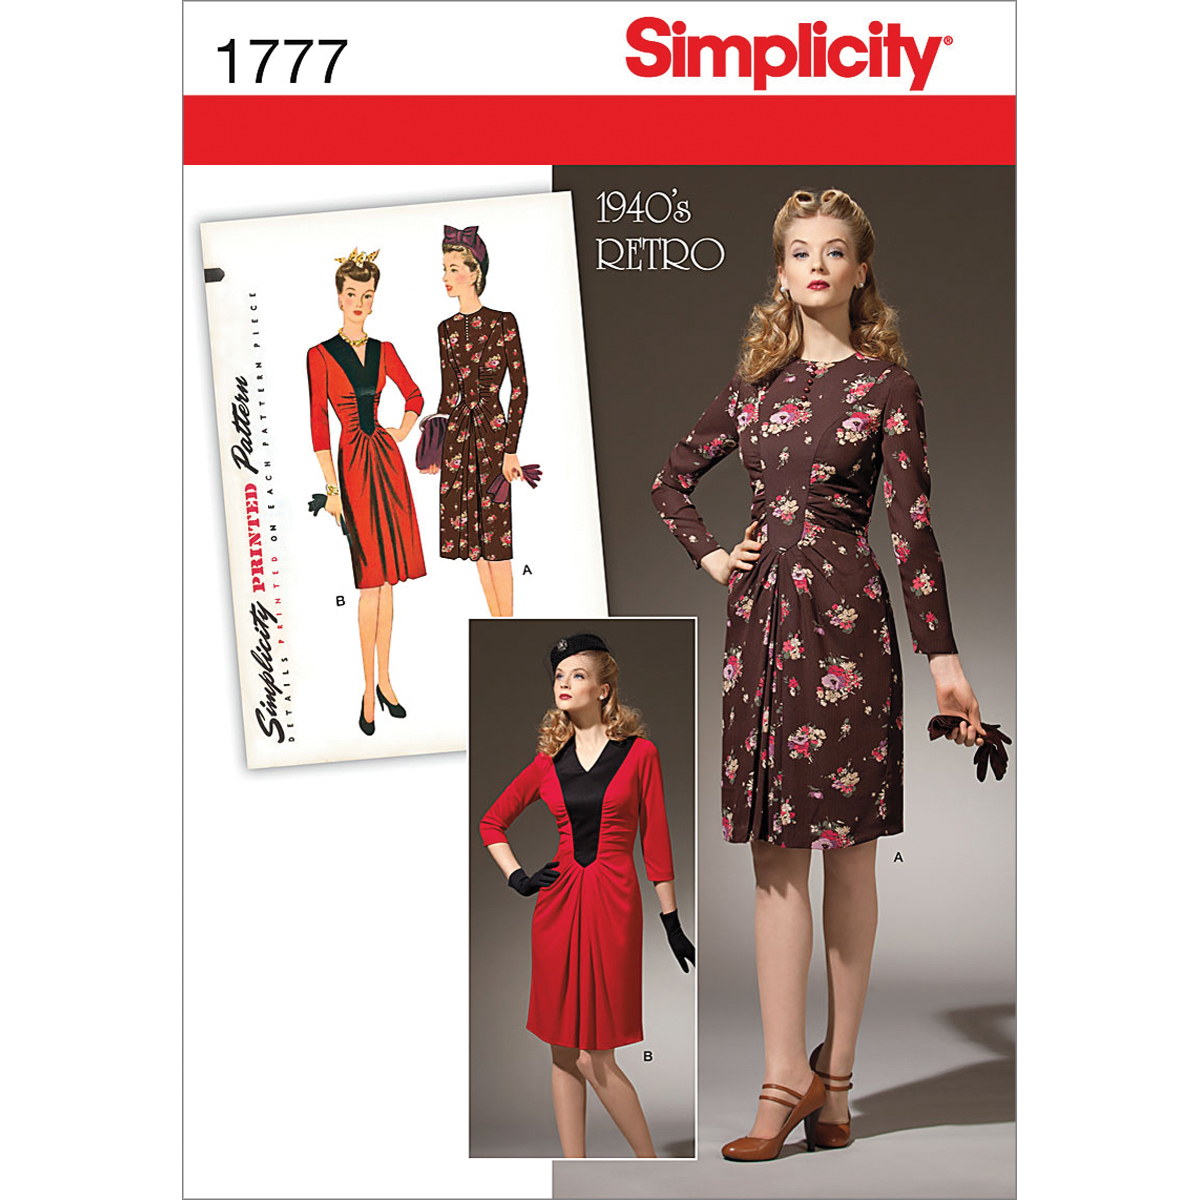 Simplicity Pattern 1777R5 14-16-18-2-Simplicity Pattern